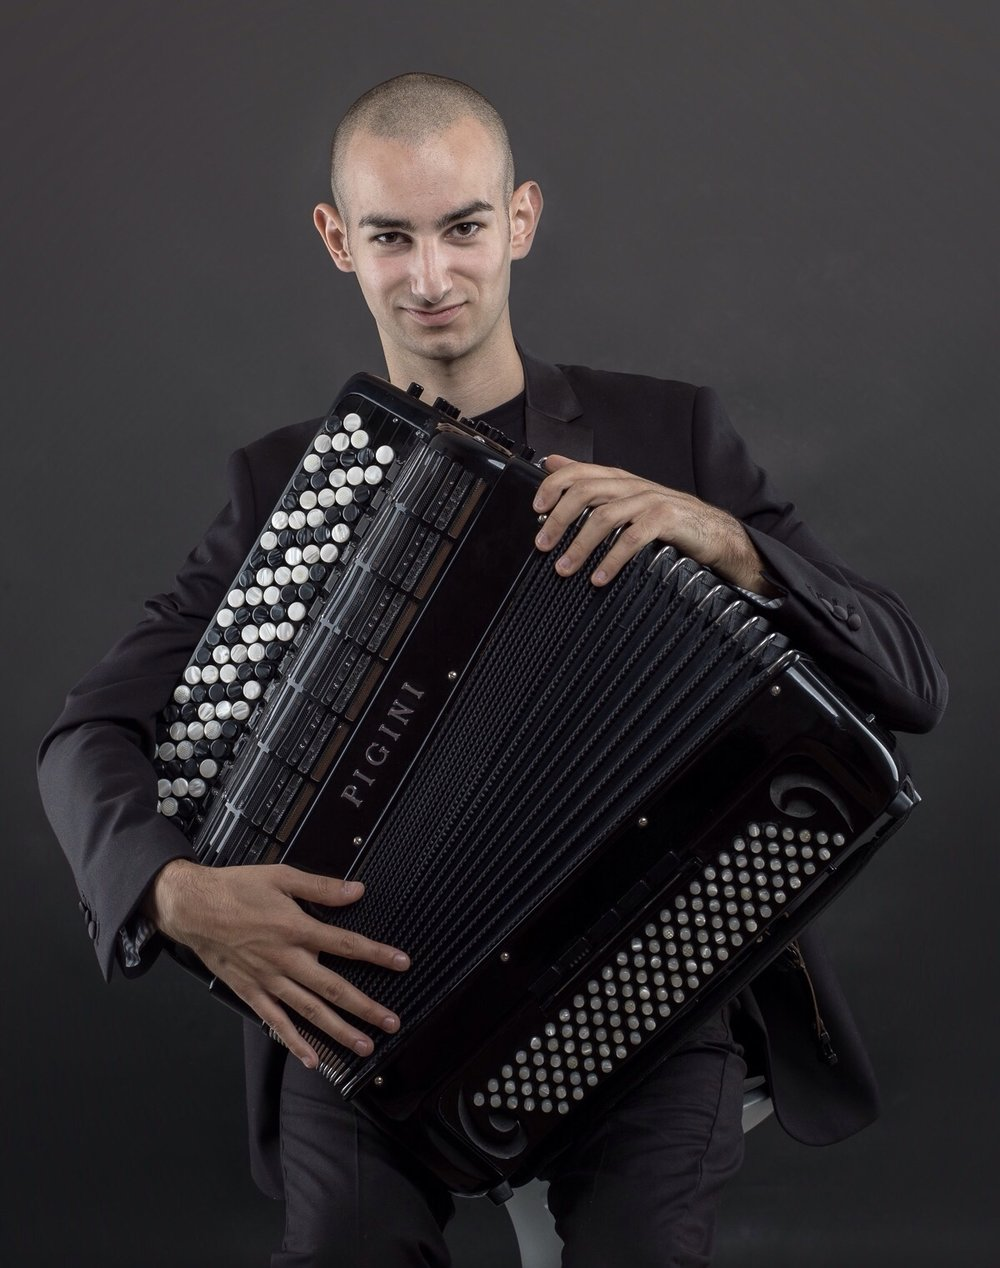 Giancarlo Palena - Accordion Player.jpeg